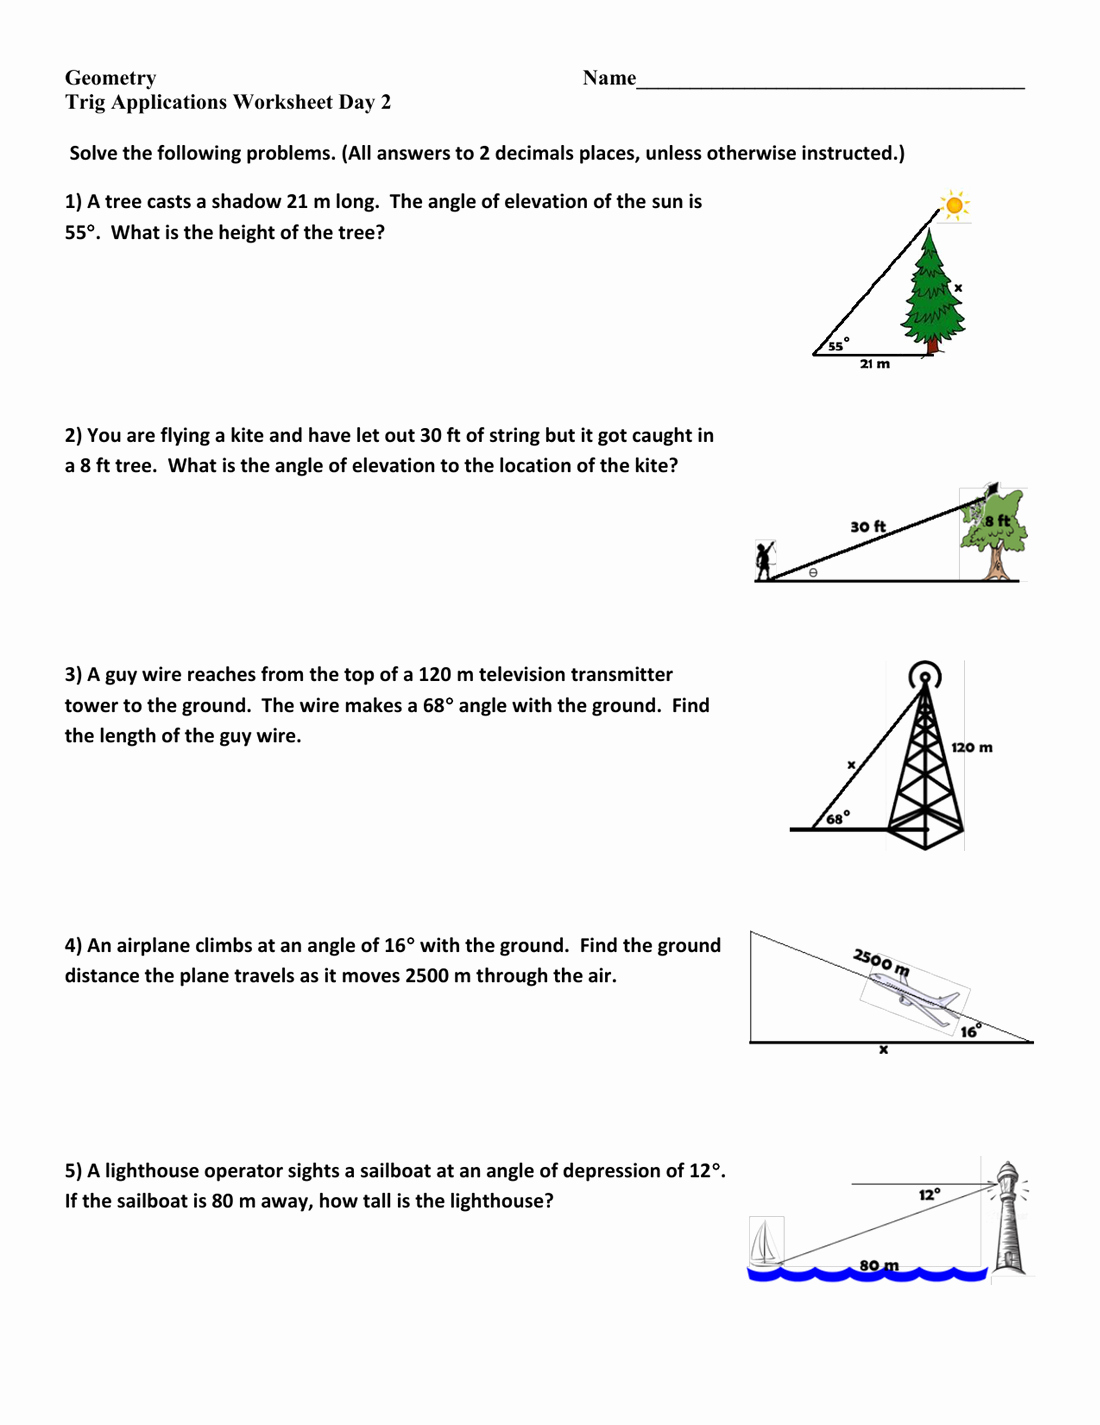 Right Triangle Word Problems Worksheet Luxury Trigonometry Triangles Mechanical Electrical Wiringelc